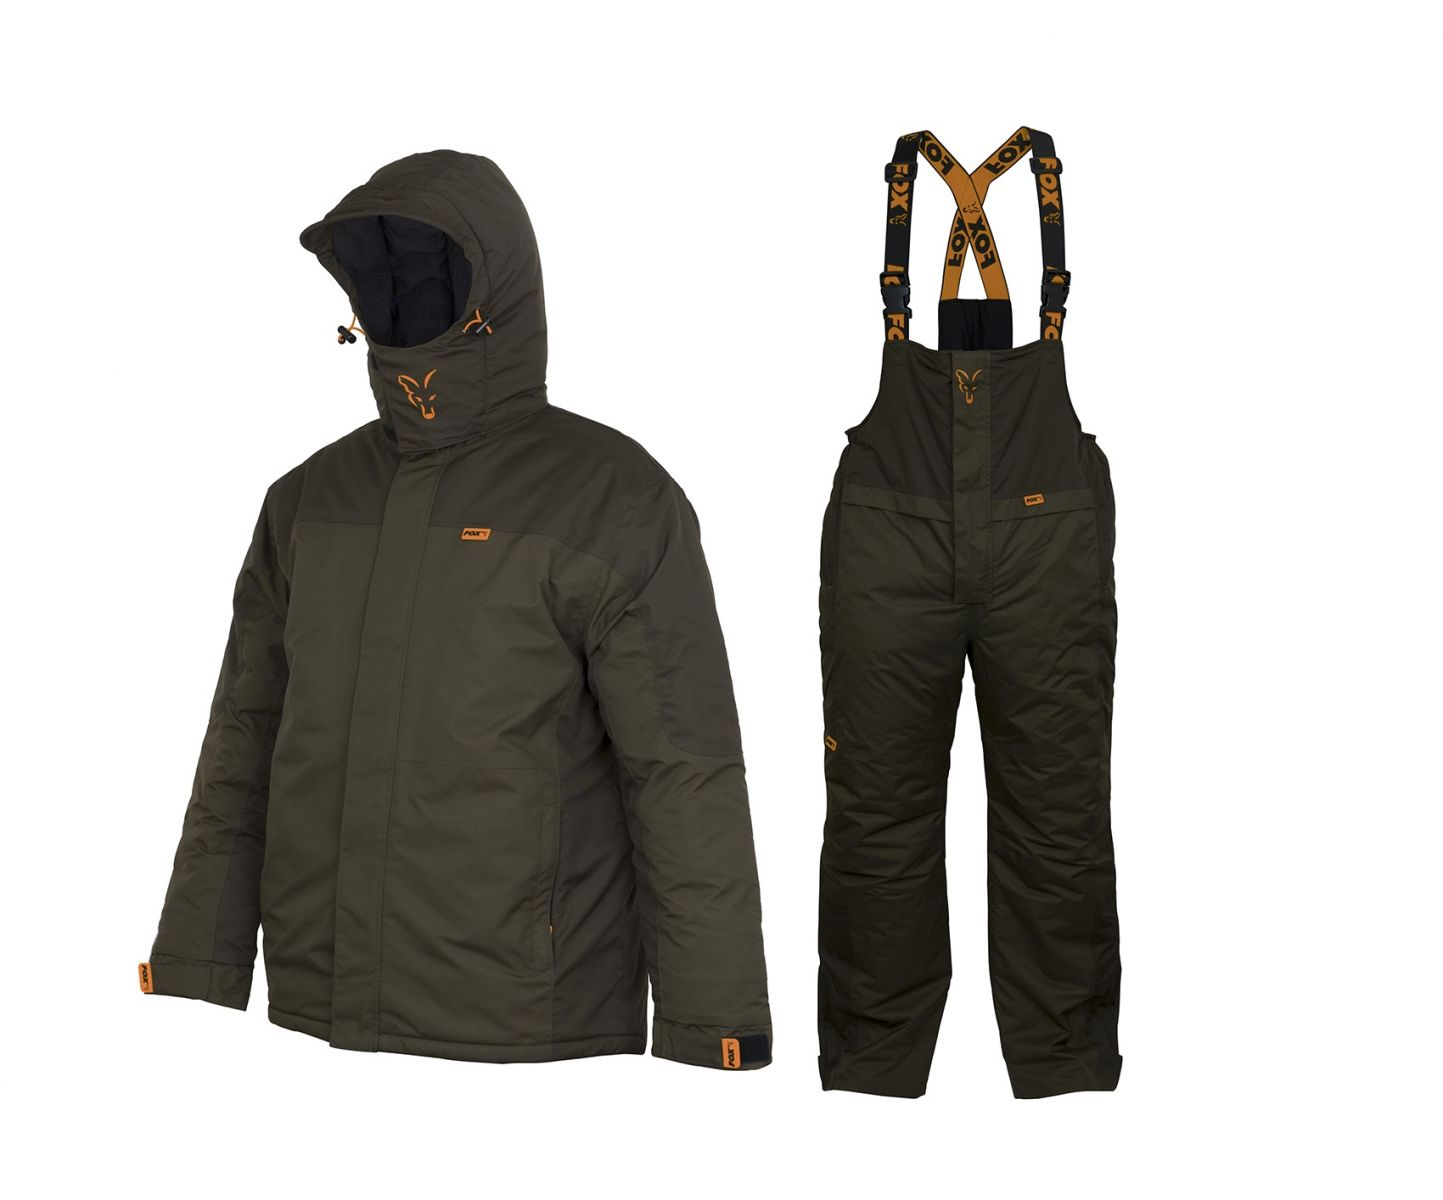 Zimný komplet Carp Winter Suit